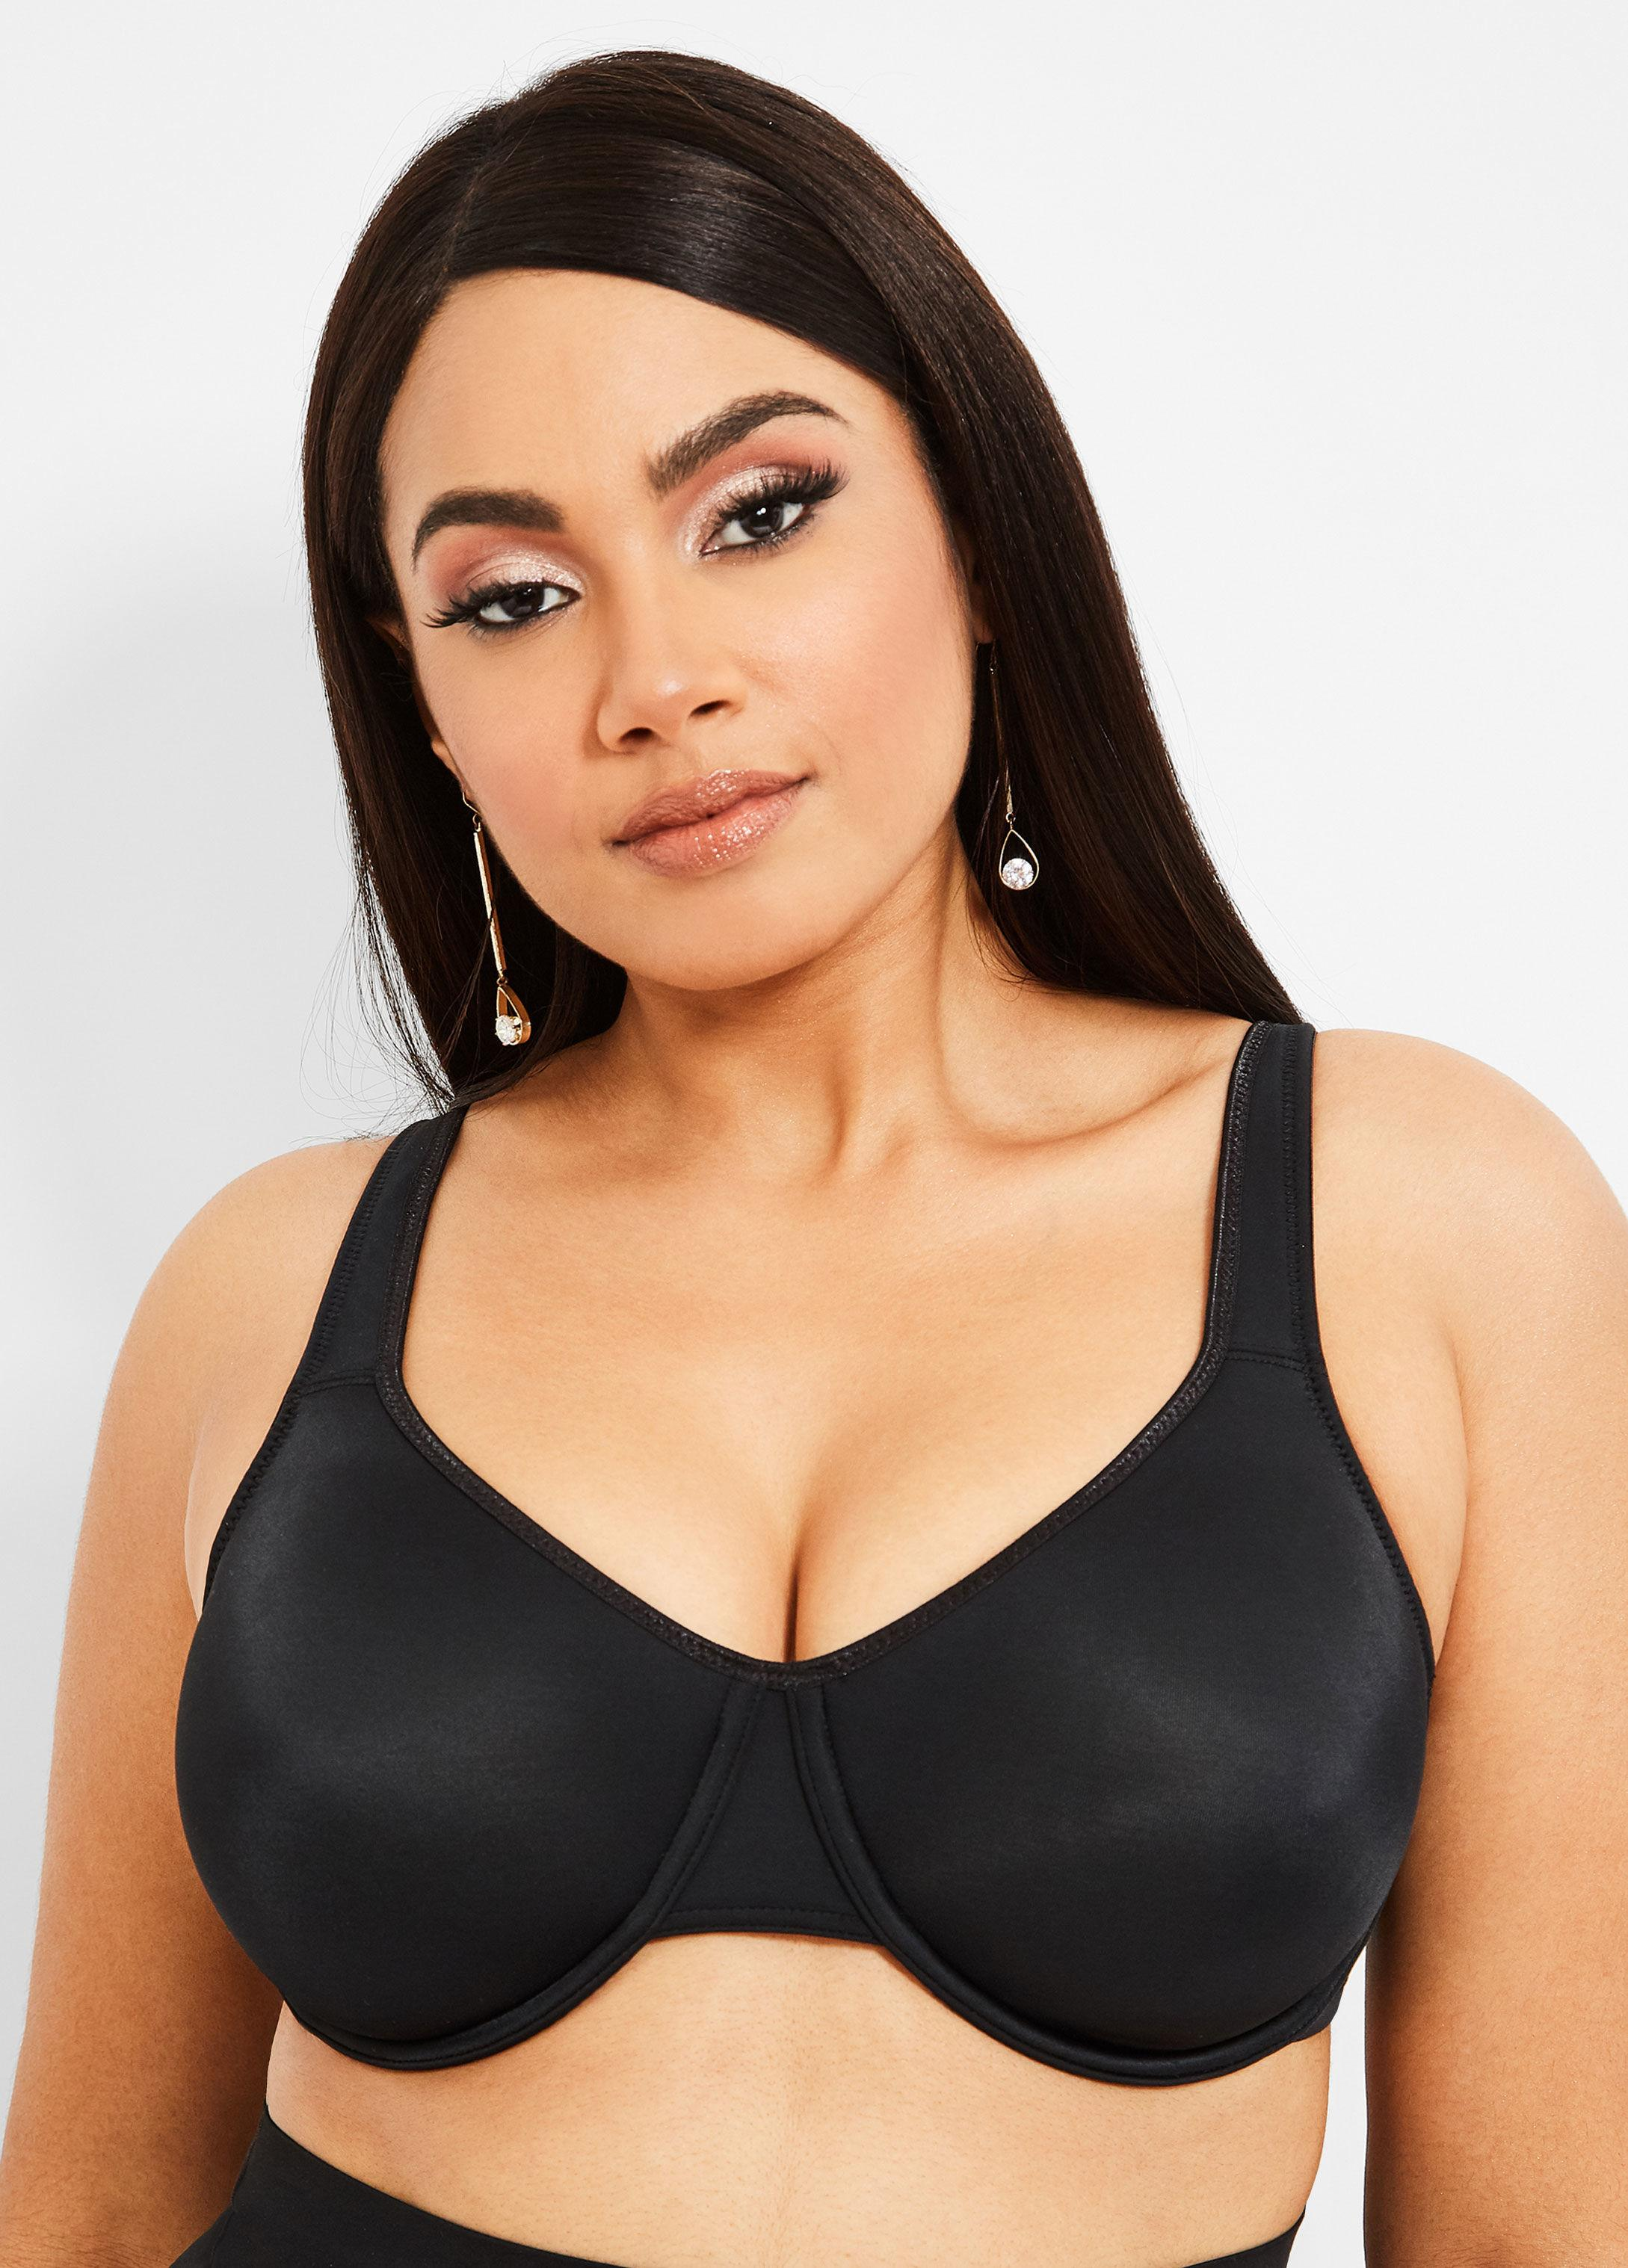 544dea74302 Ashley Stewart - Black Plus Size Underwire Soft Cup Bra - Lyst. View  fullscreen